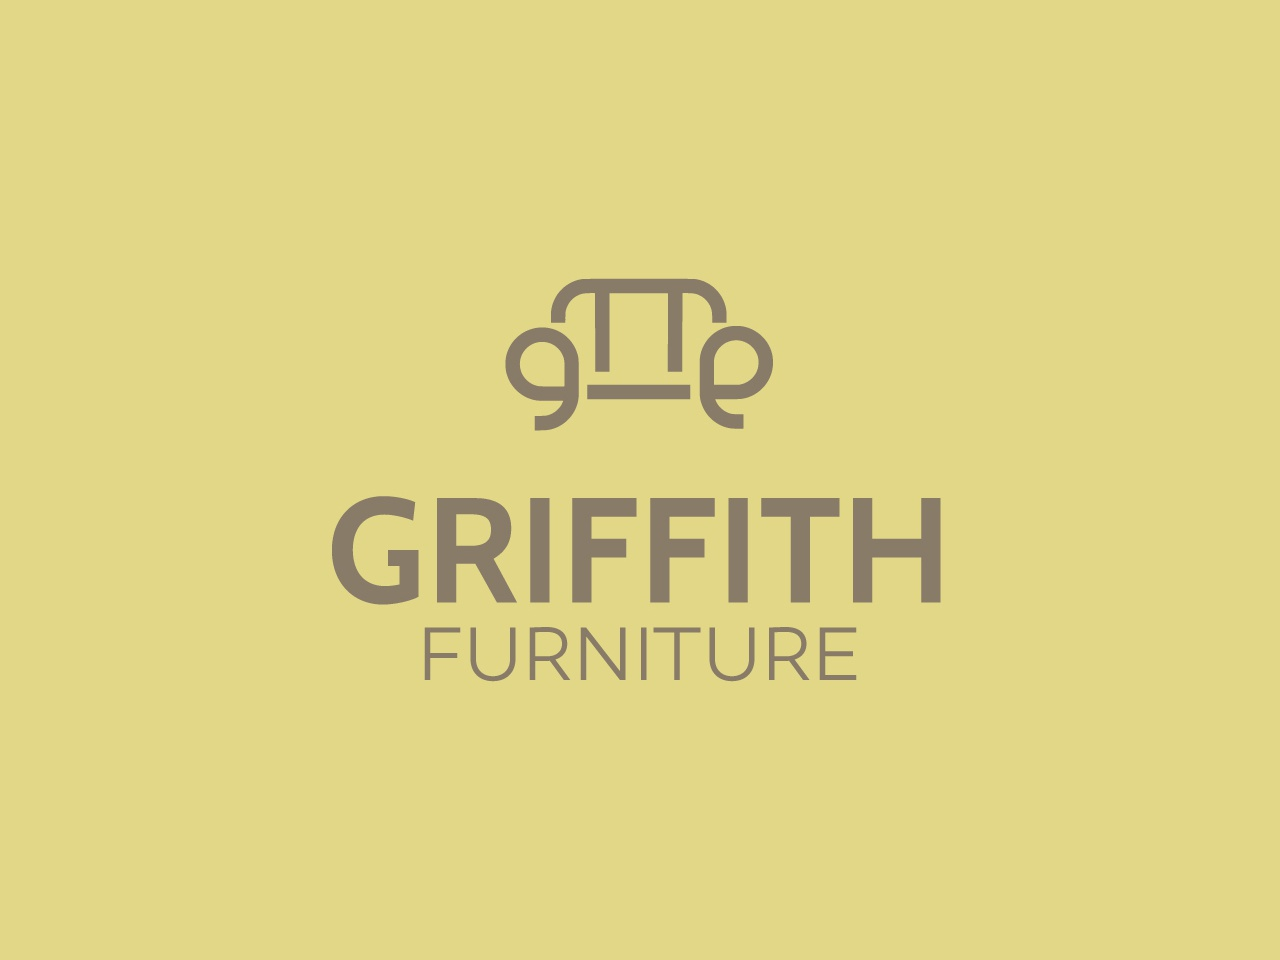 Griffith Furniture brand seat typography web ux vector ui design simple minimalist logo minimal furniture sofa icon branding display handcrafted logo